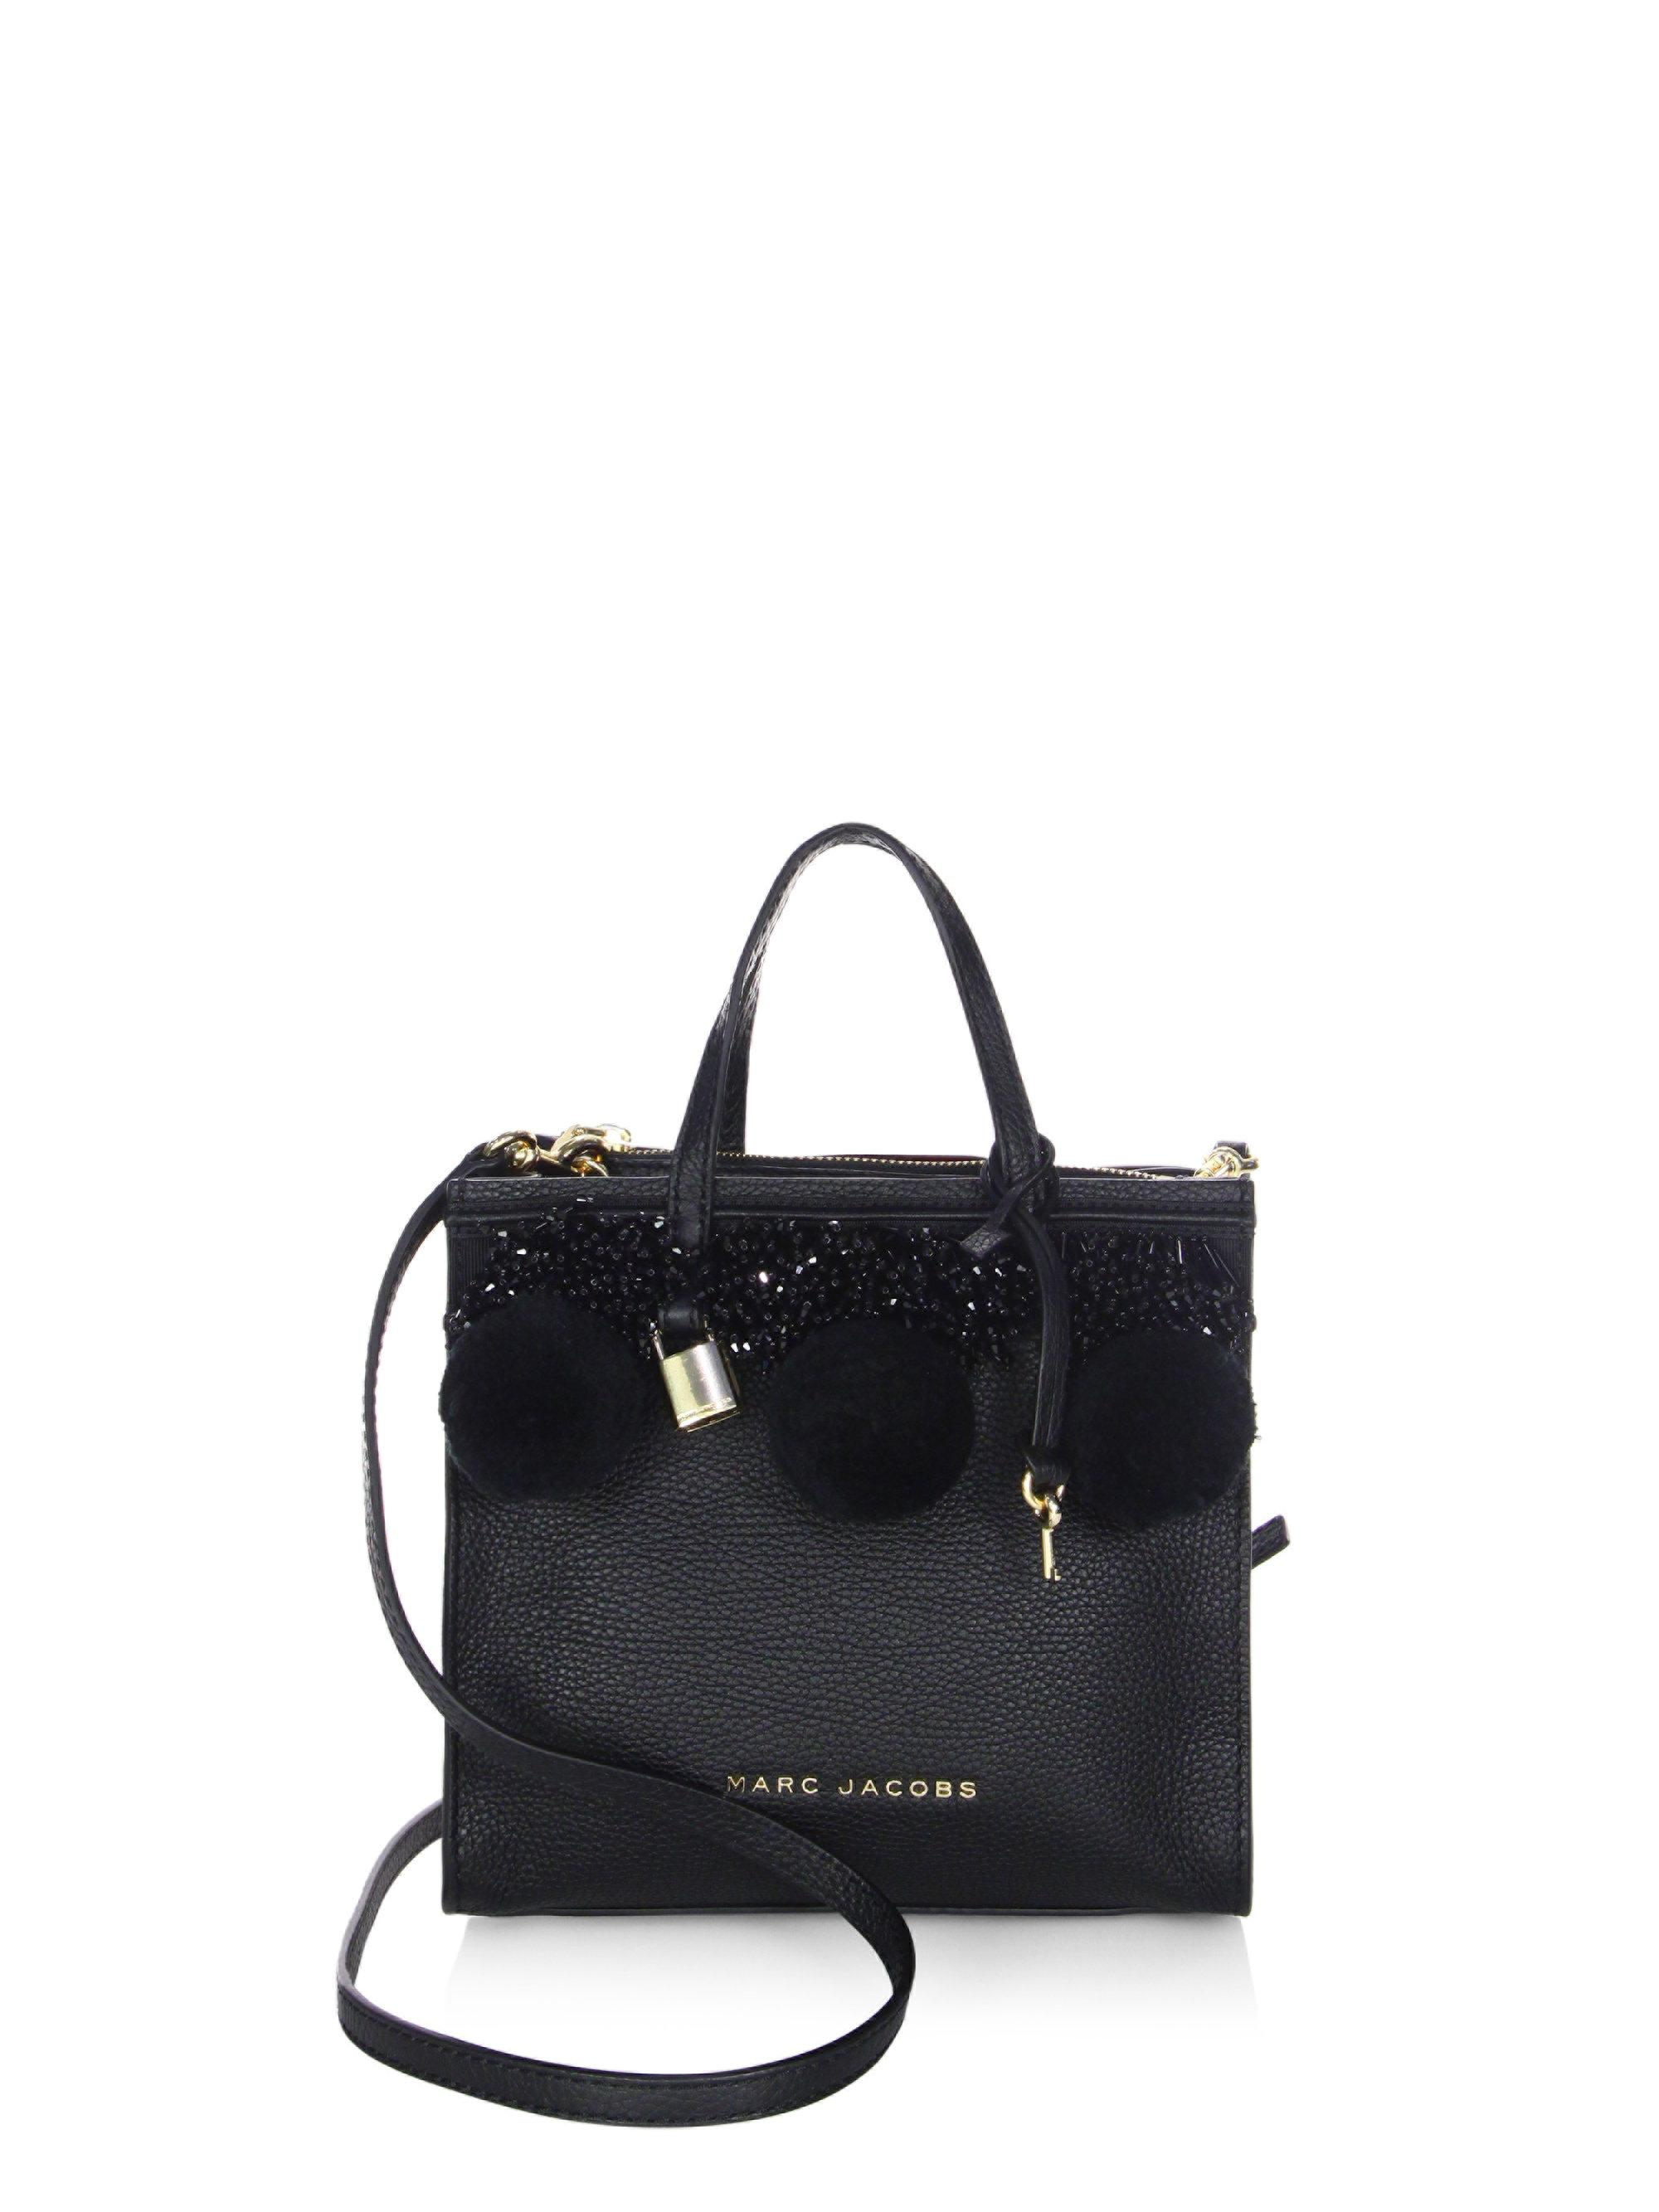 3183ad10948d Marc Jacobs Mini Grind Bead And Poms Leather Crossbody Bag in Black ...